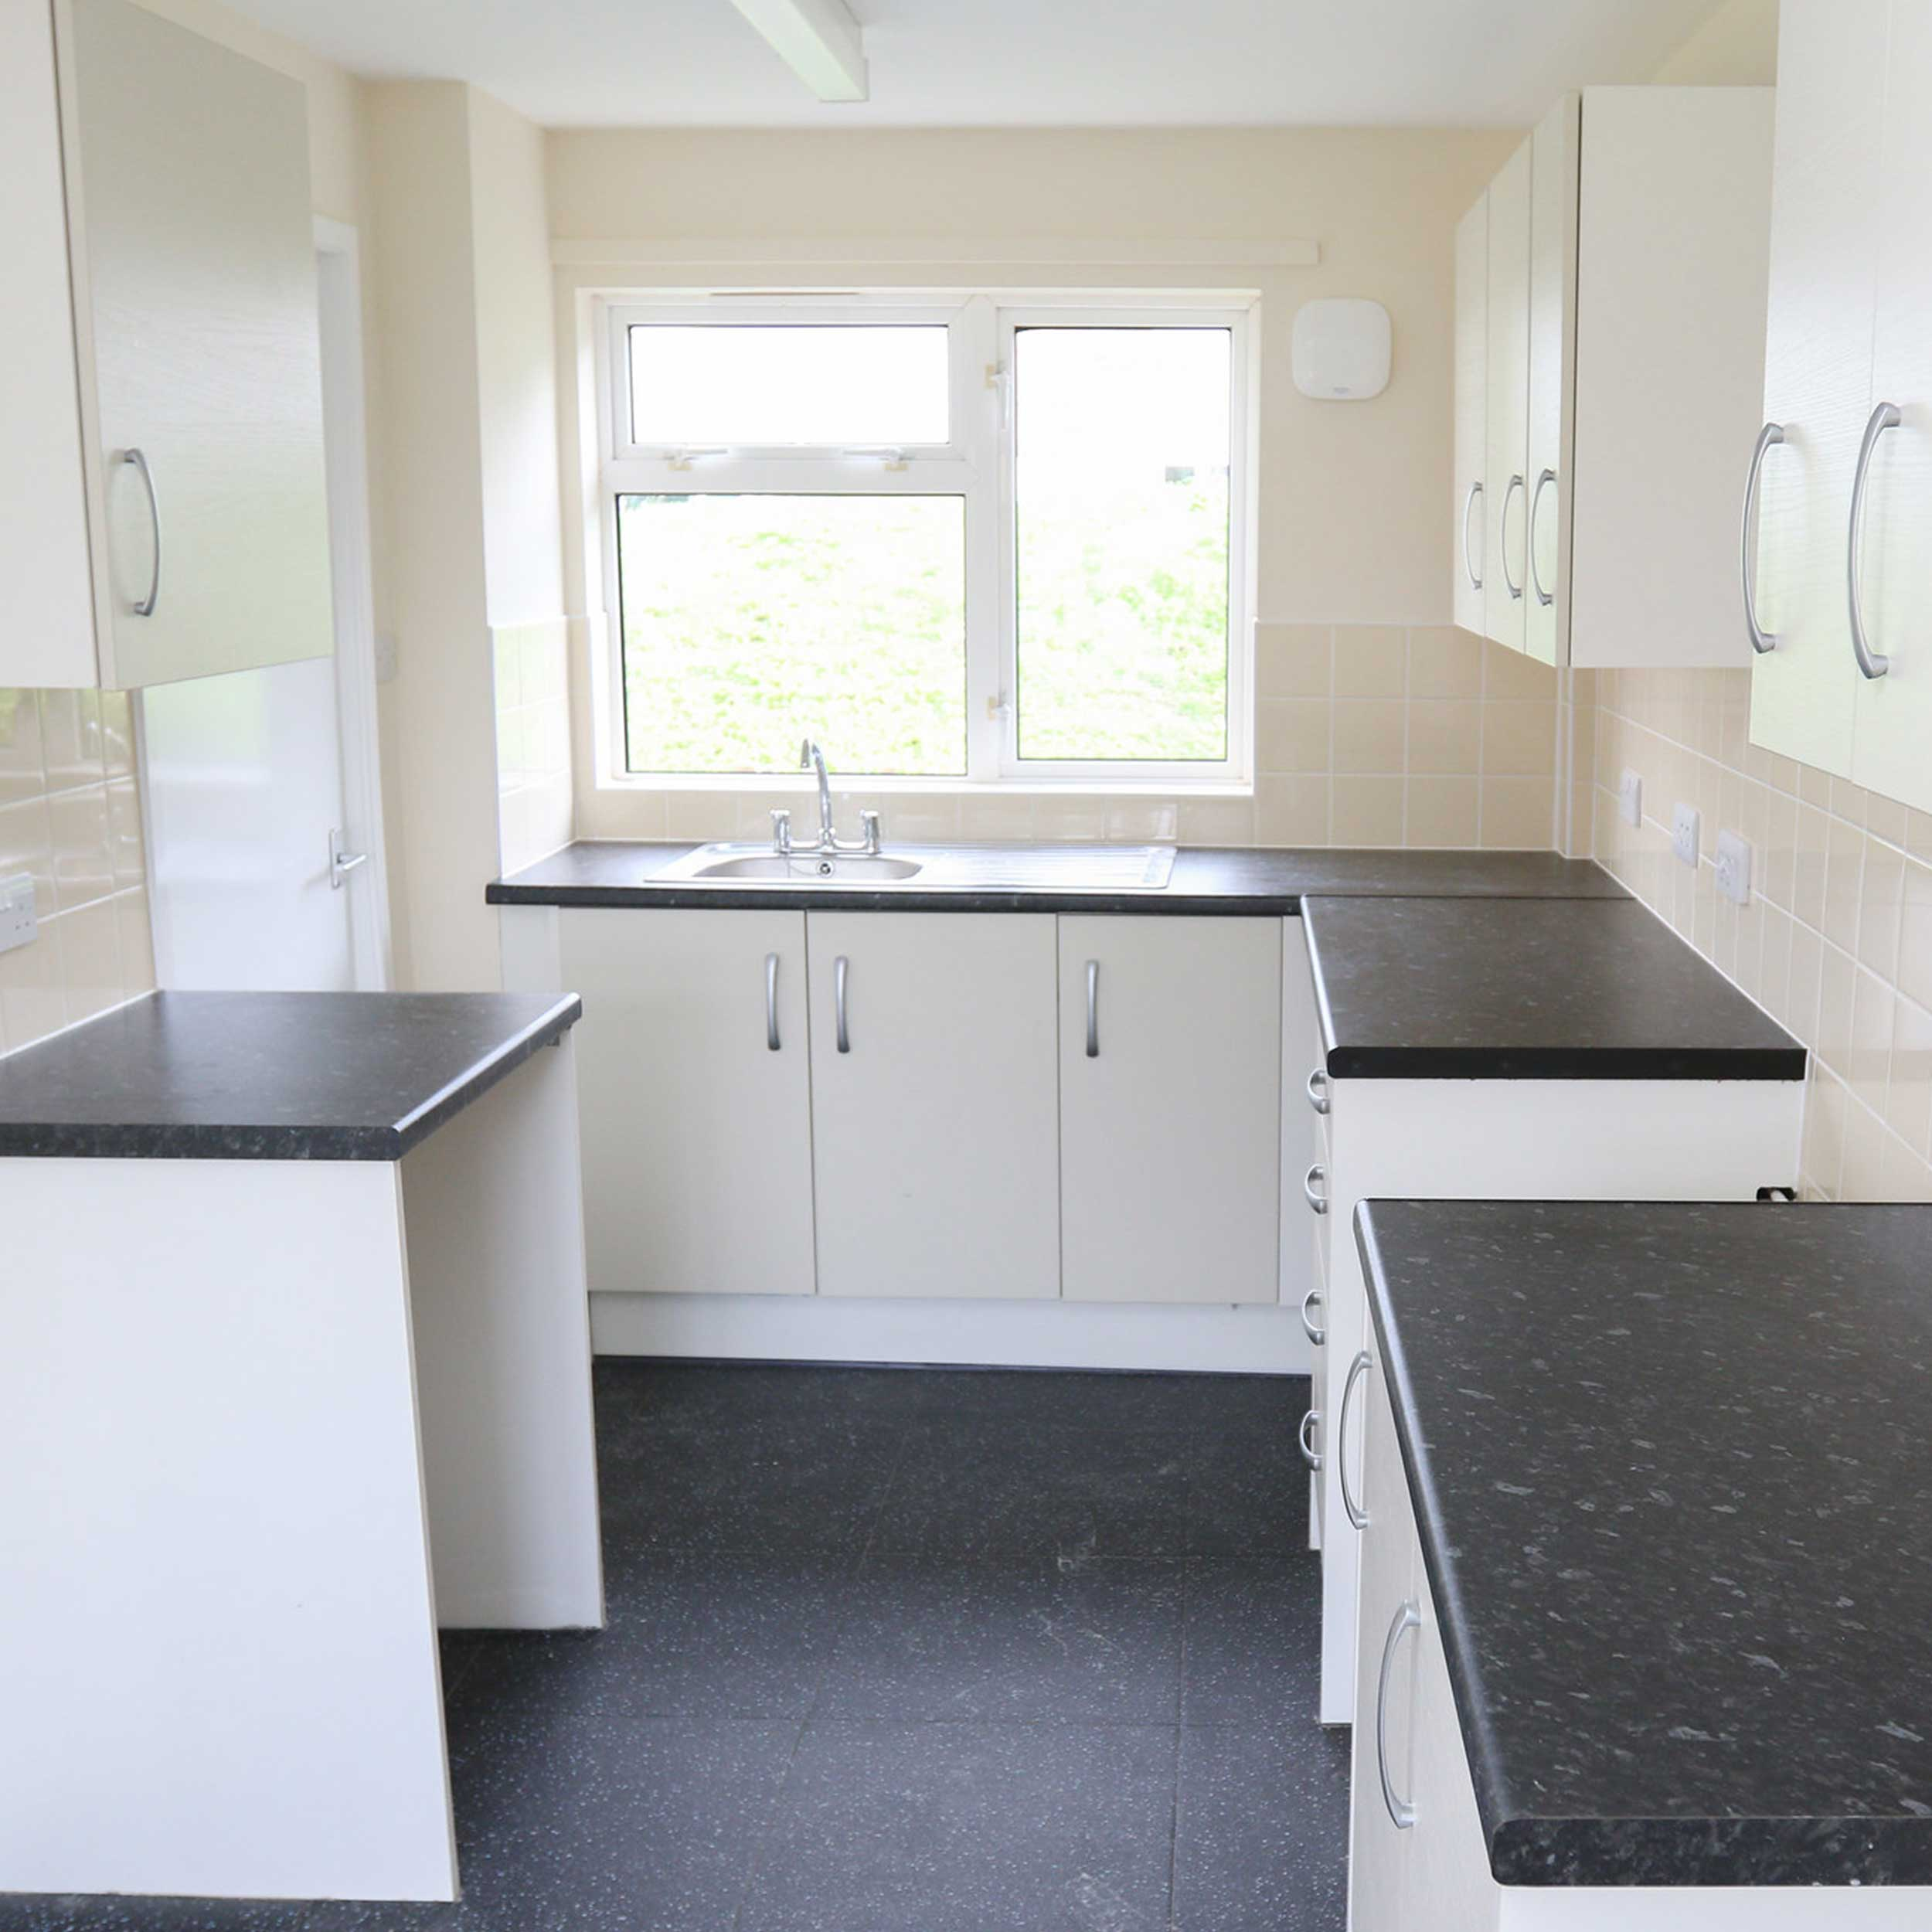 New void kitchen fit out in a Wrexham